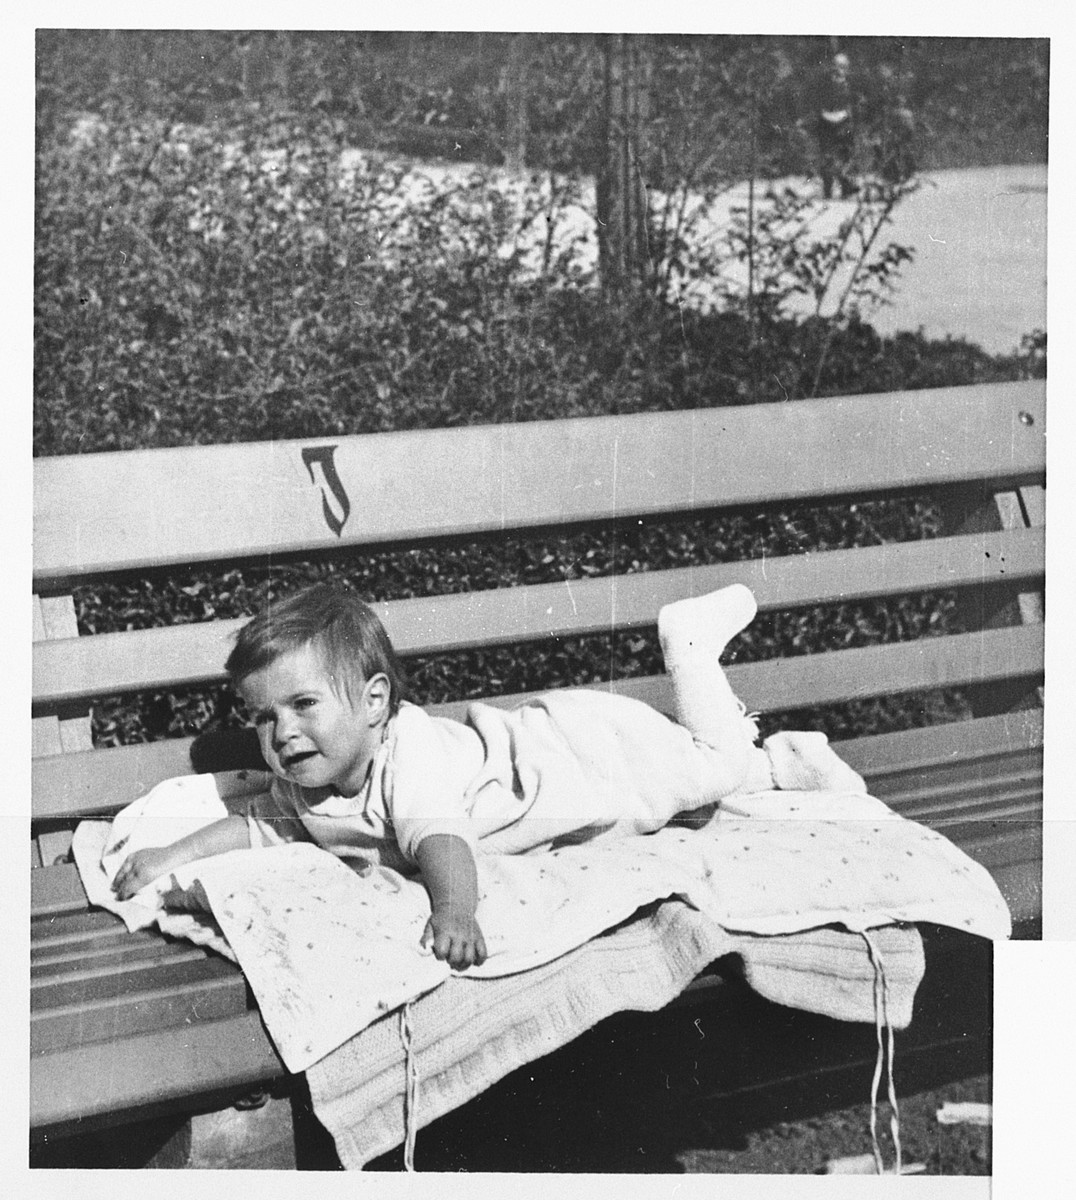 A young baby lies on a park bench marked with a J to indicate it is only for Jews.  Pictured is Marianne Harpuder (now Price).